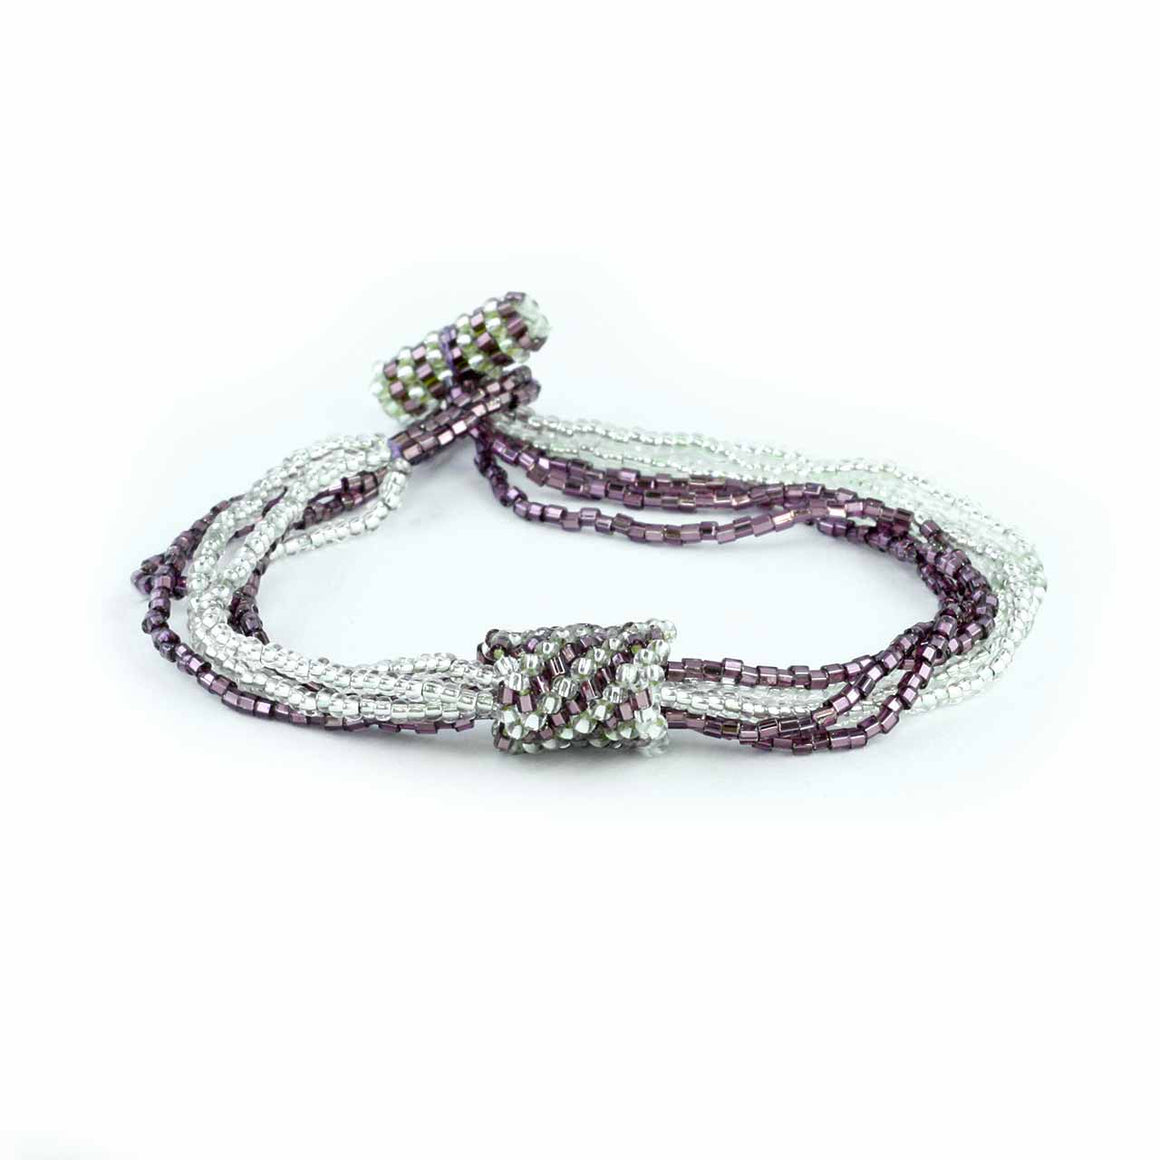 5 Strand Bracelet with Decorative Crocheted Spiral